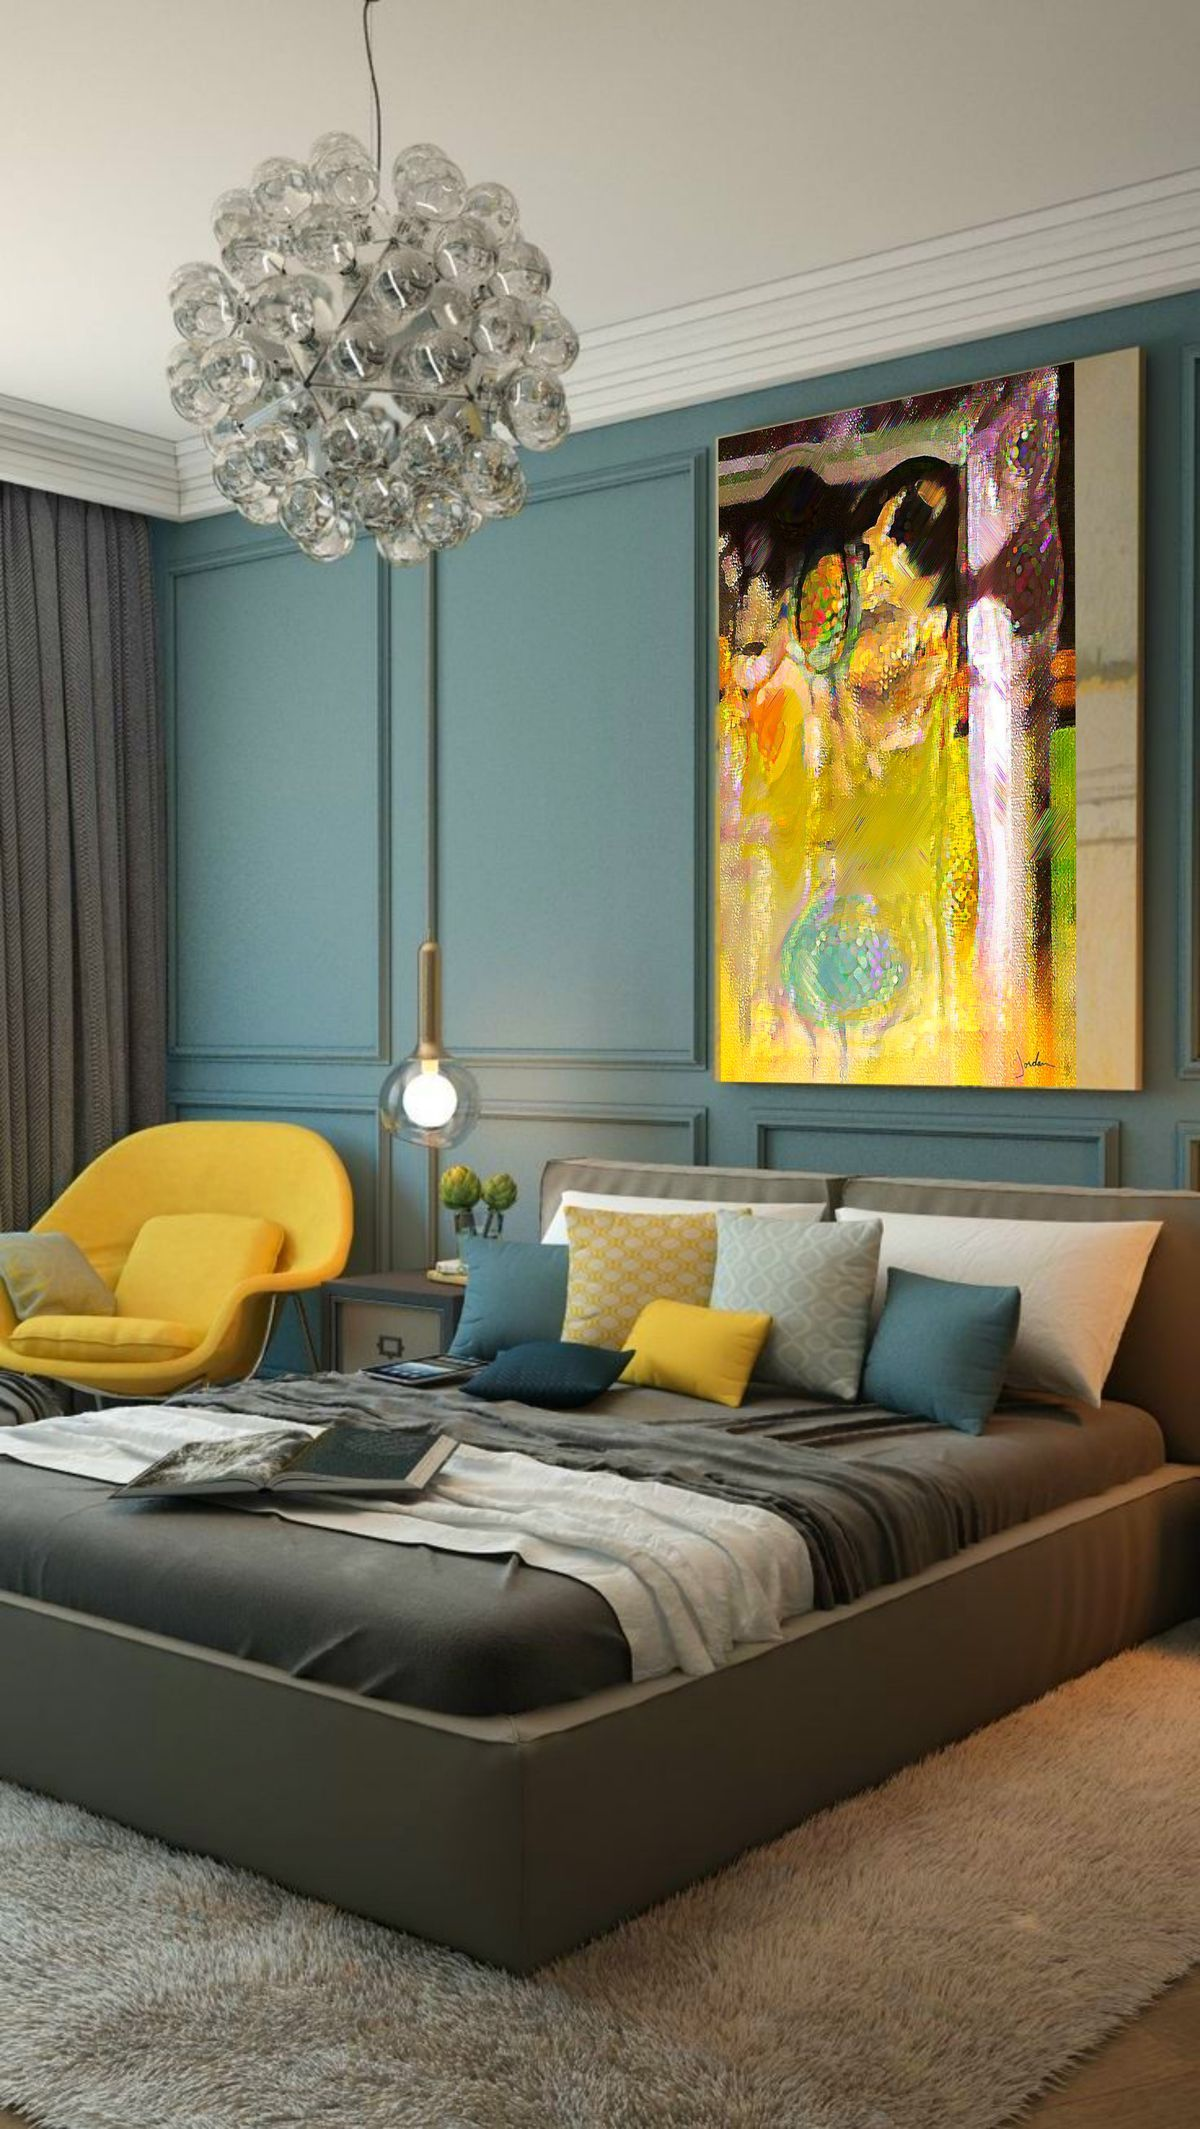 Interior lighting for your bedroom color interior design trends